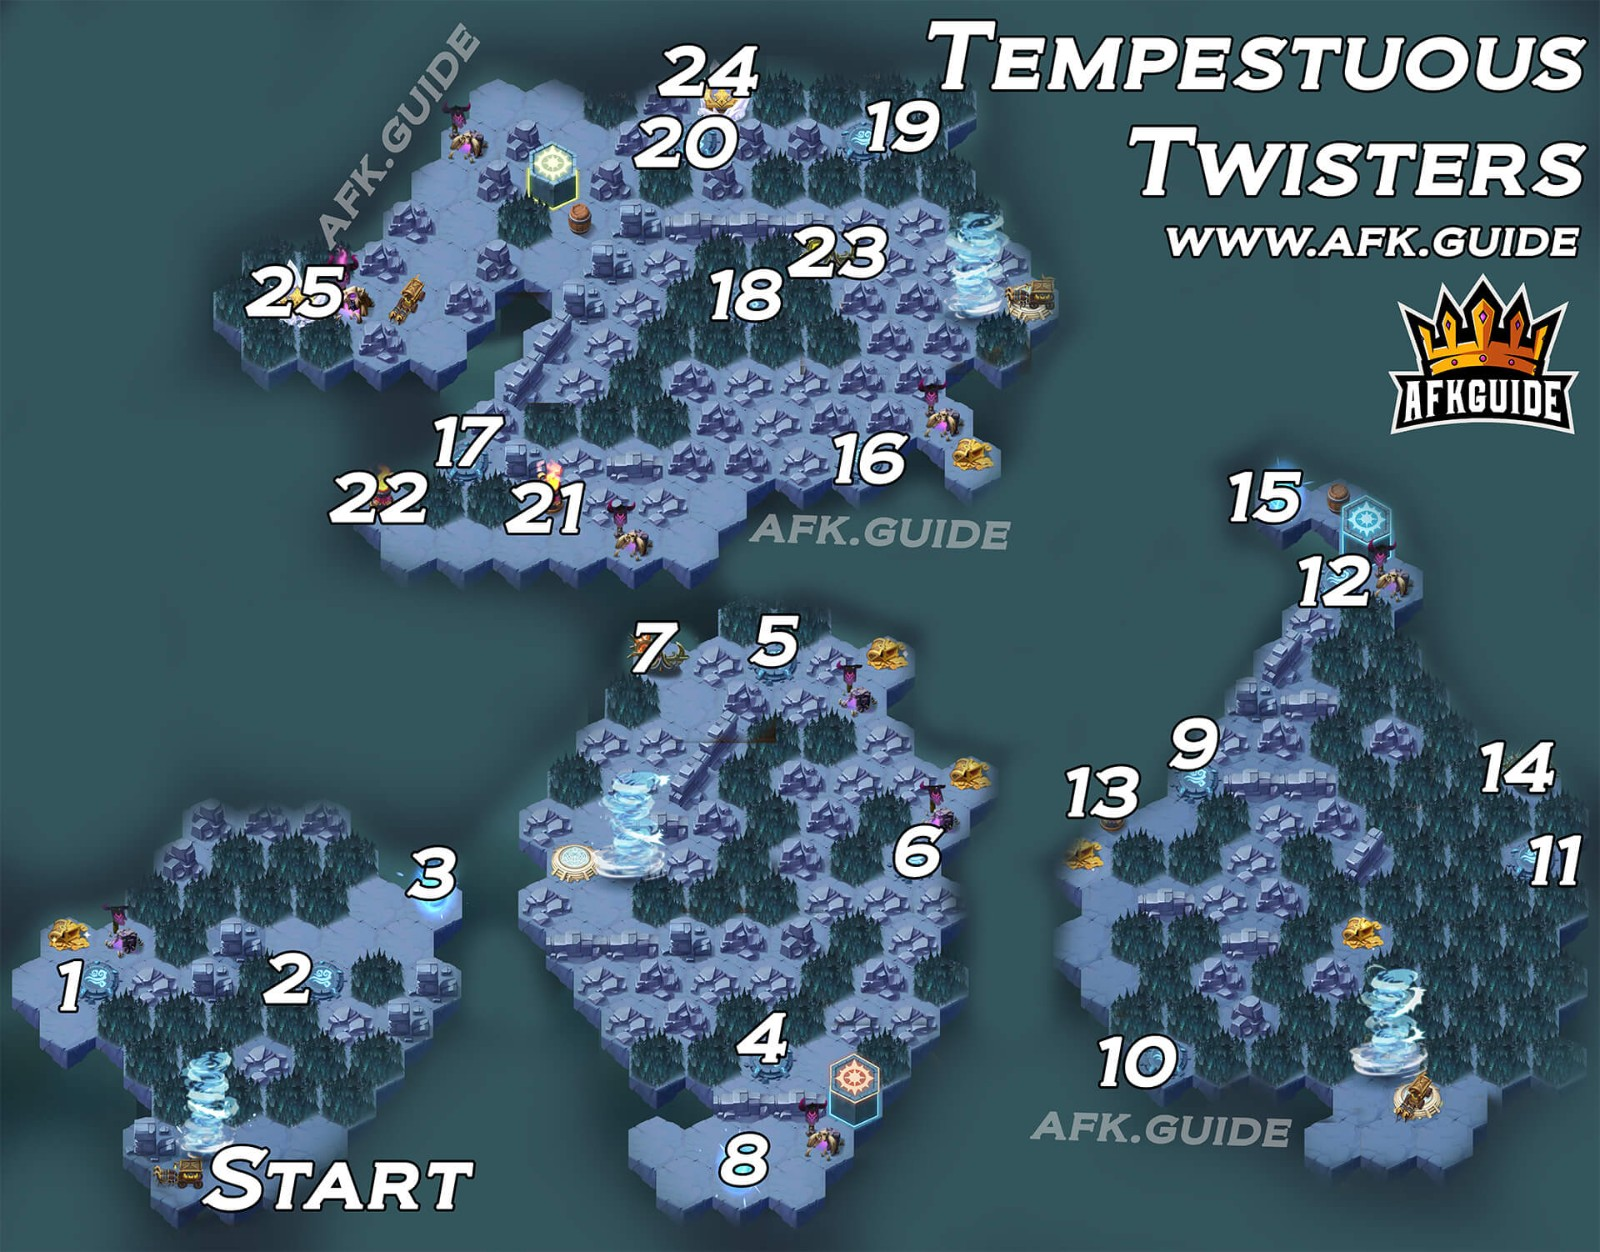 tempestuous twisters afk arena map voyage of wonders